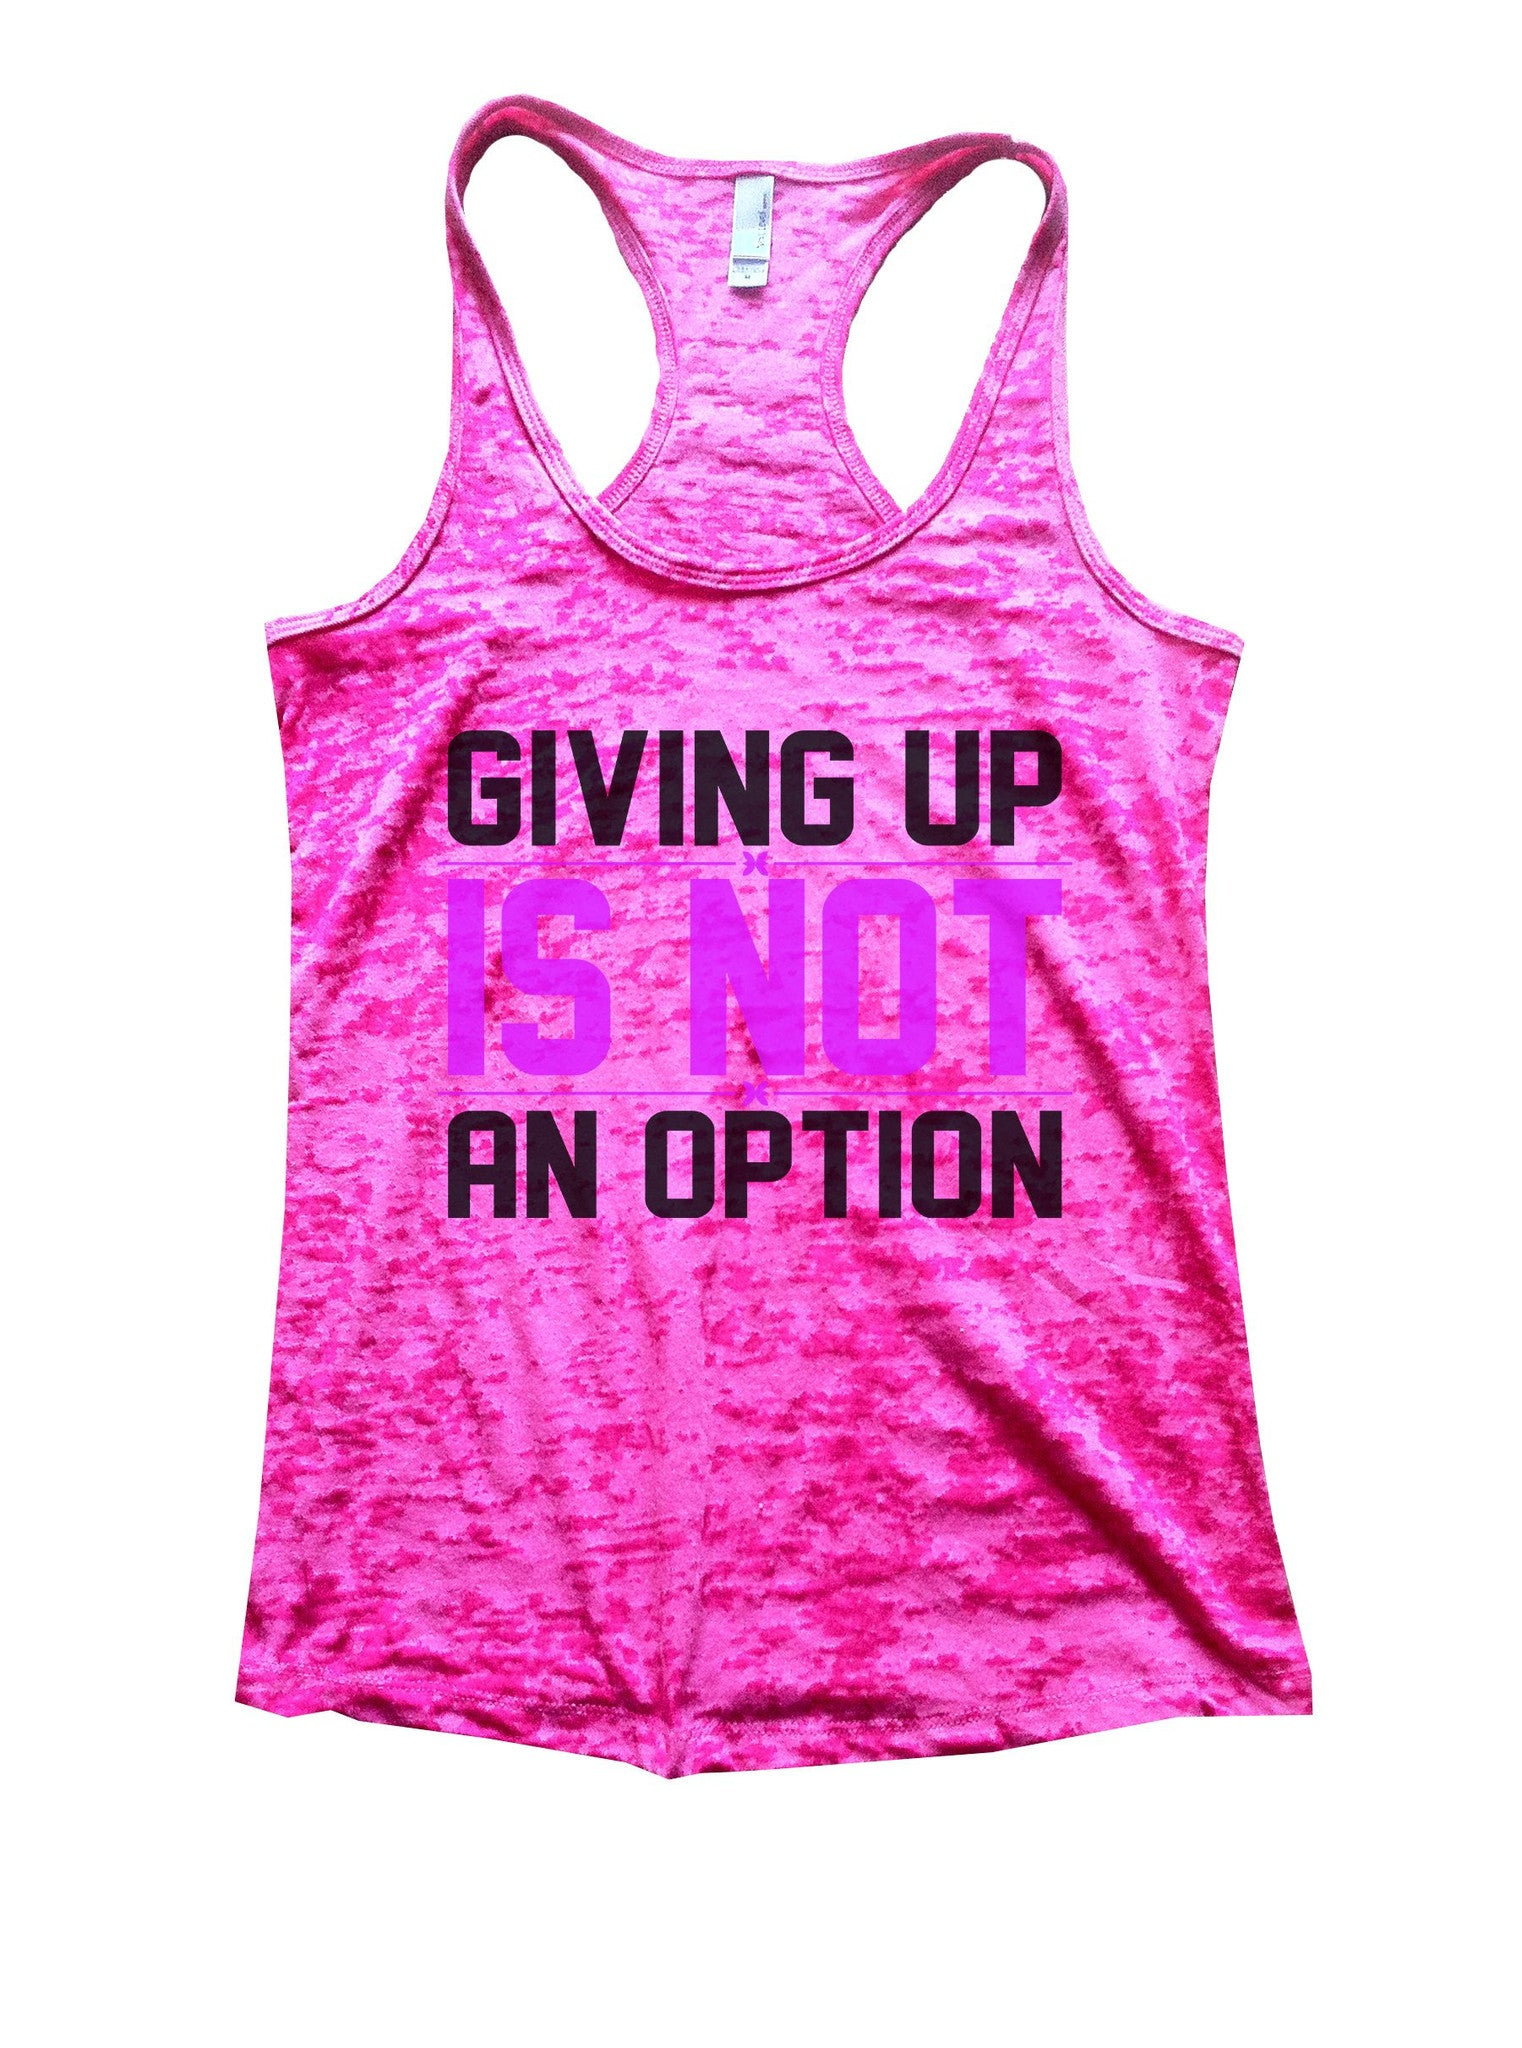 Giving Up Is Not An Option Burnout Tank Top By BurnoutTankTops.com - 862 - Funny Shirts Tank Tops Burnouts and Triblends  - 5